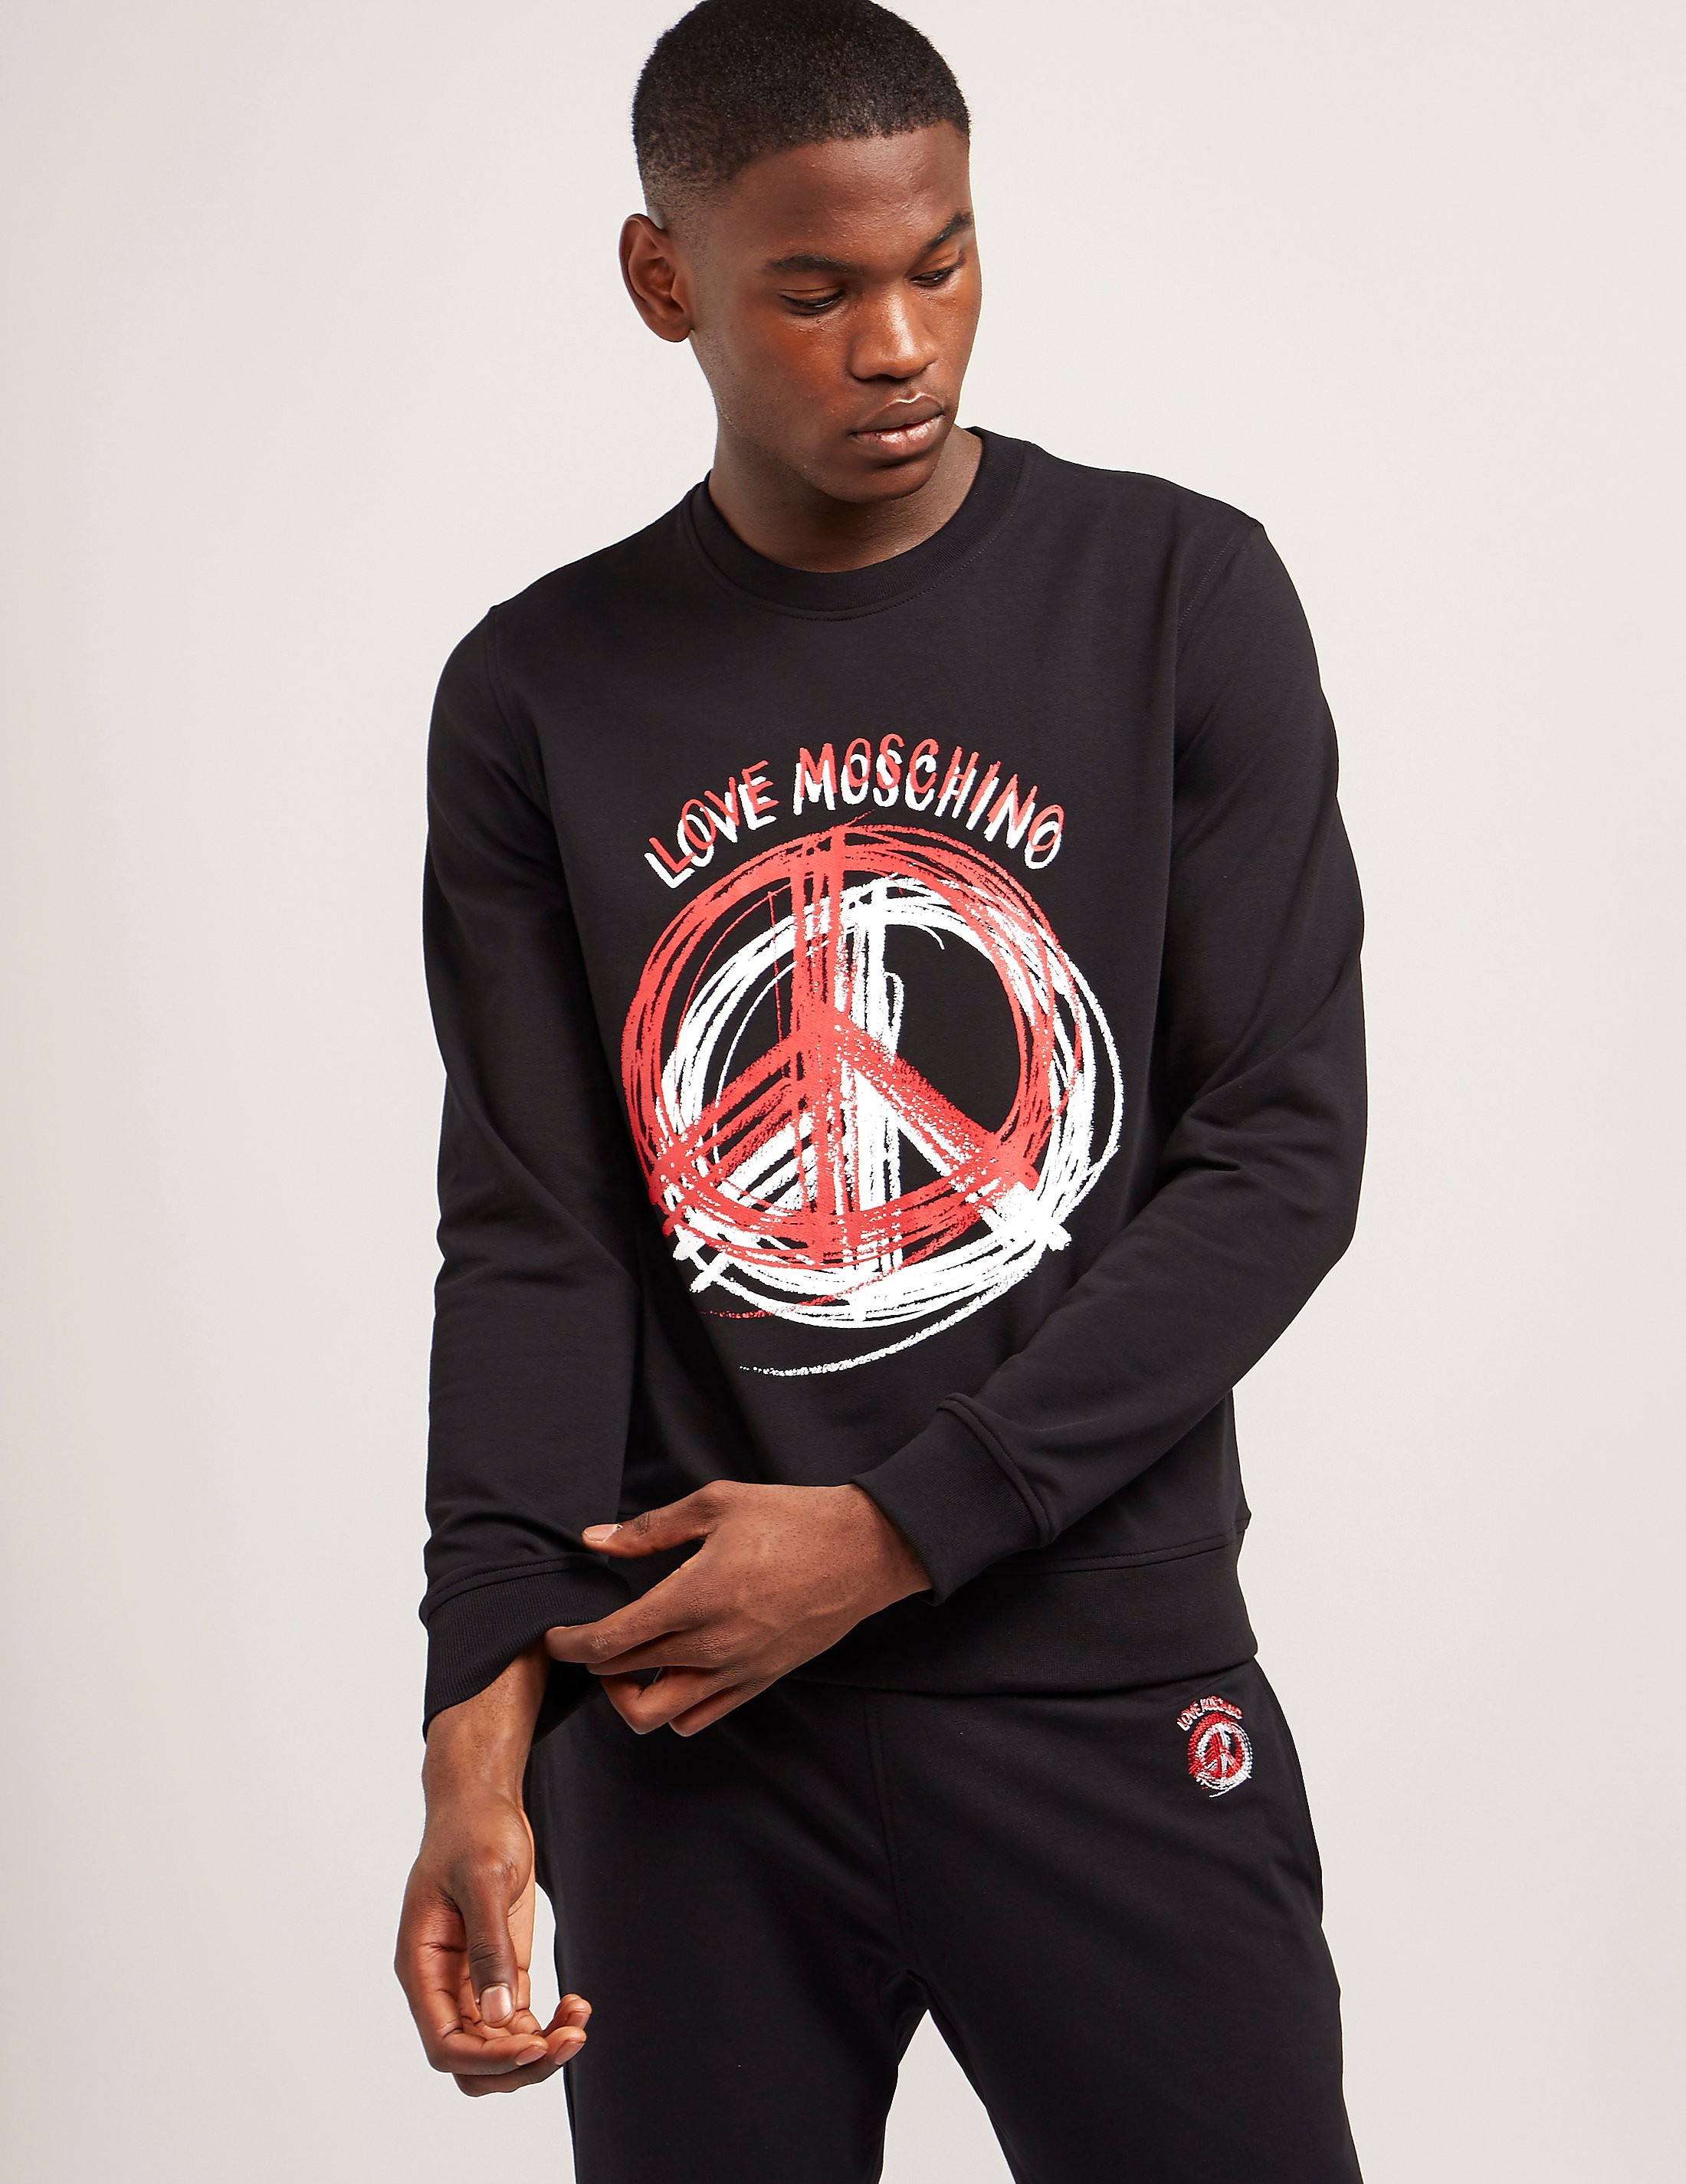 Love Moschino Stencil Peace Sweatshirt